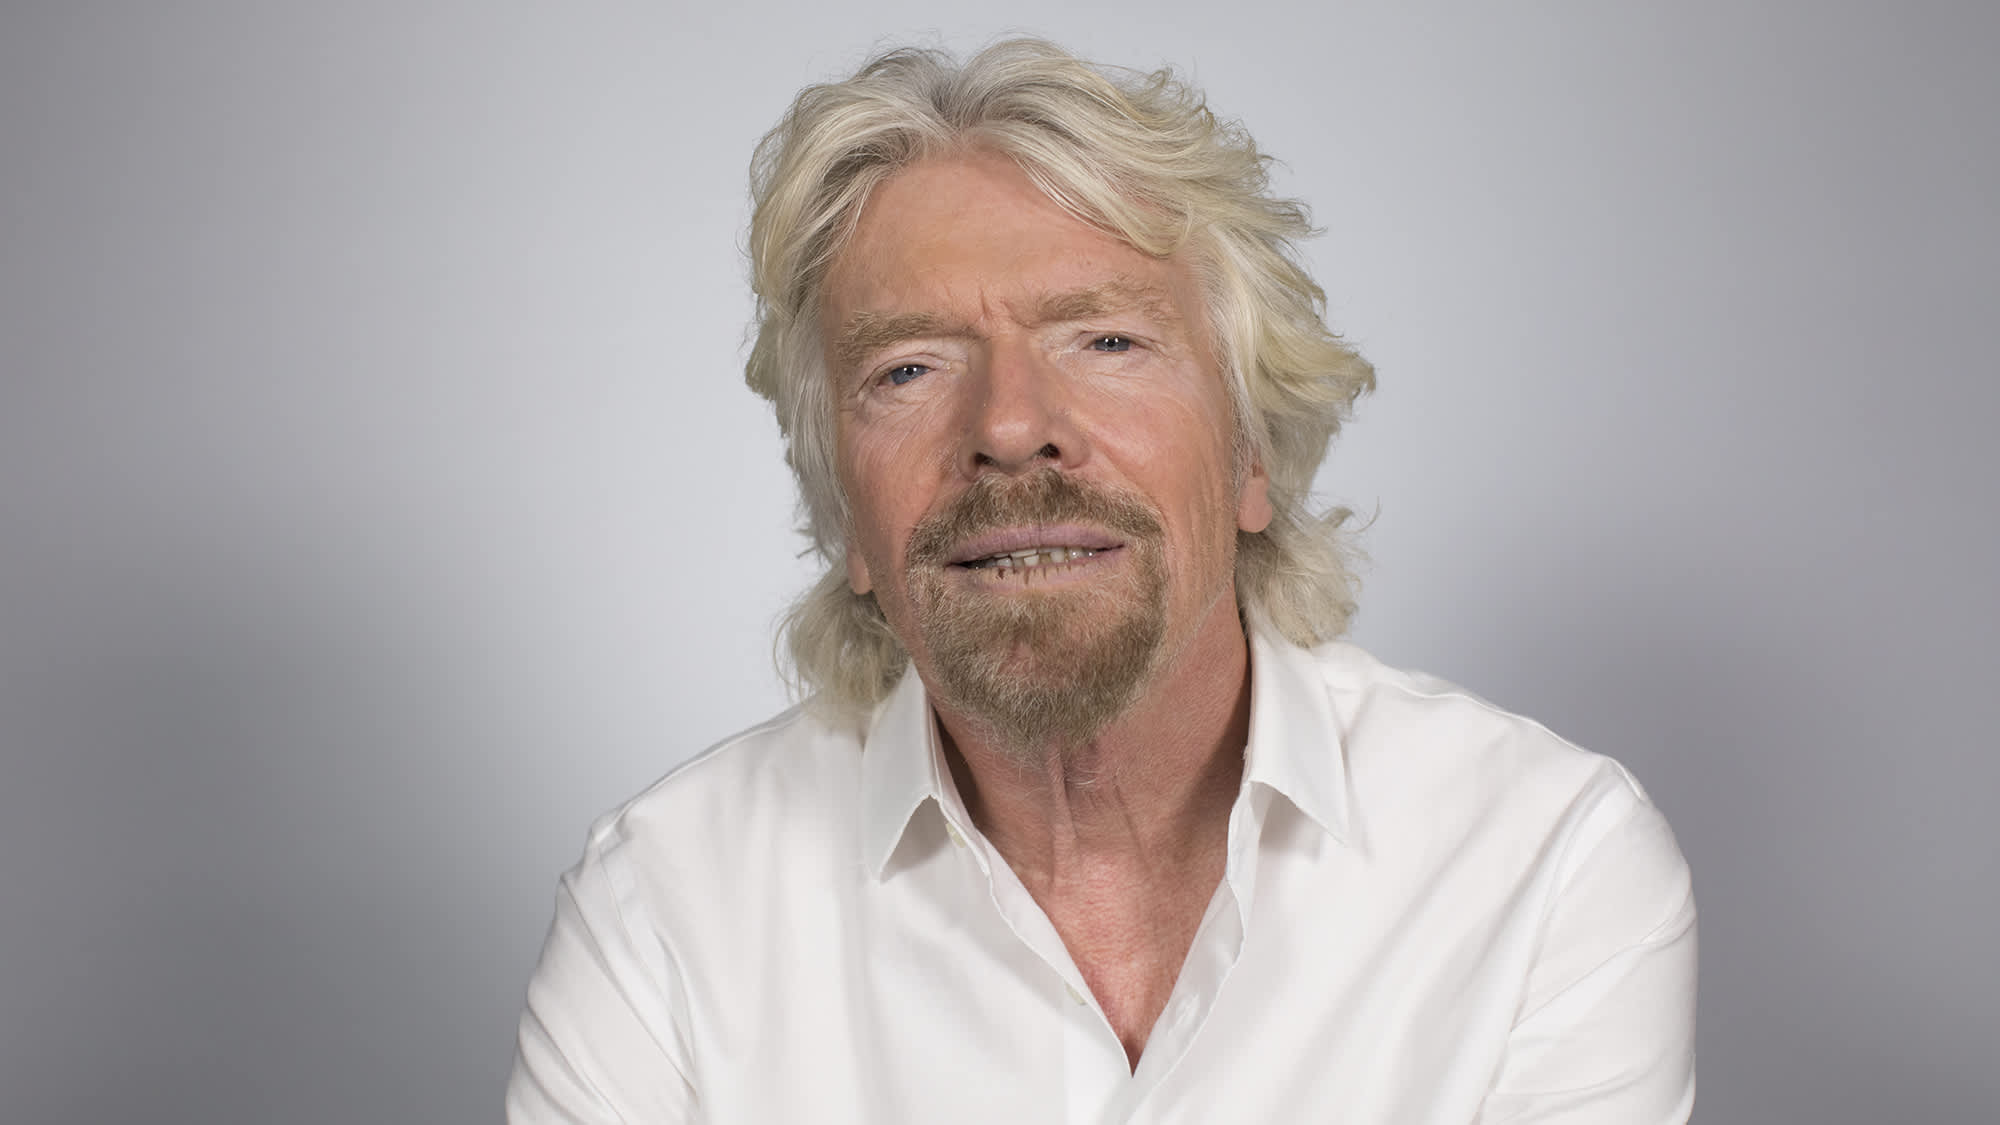 richard branson says everyone could benefit from a shorter workweek